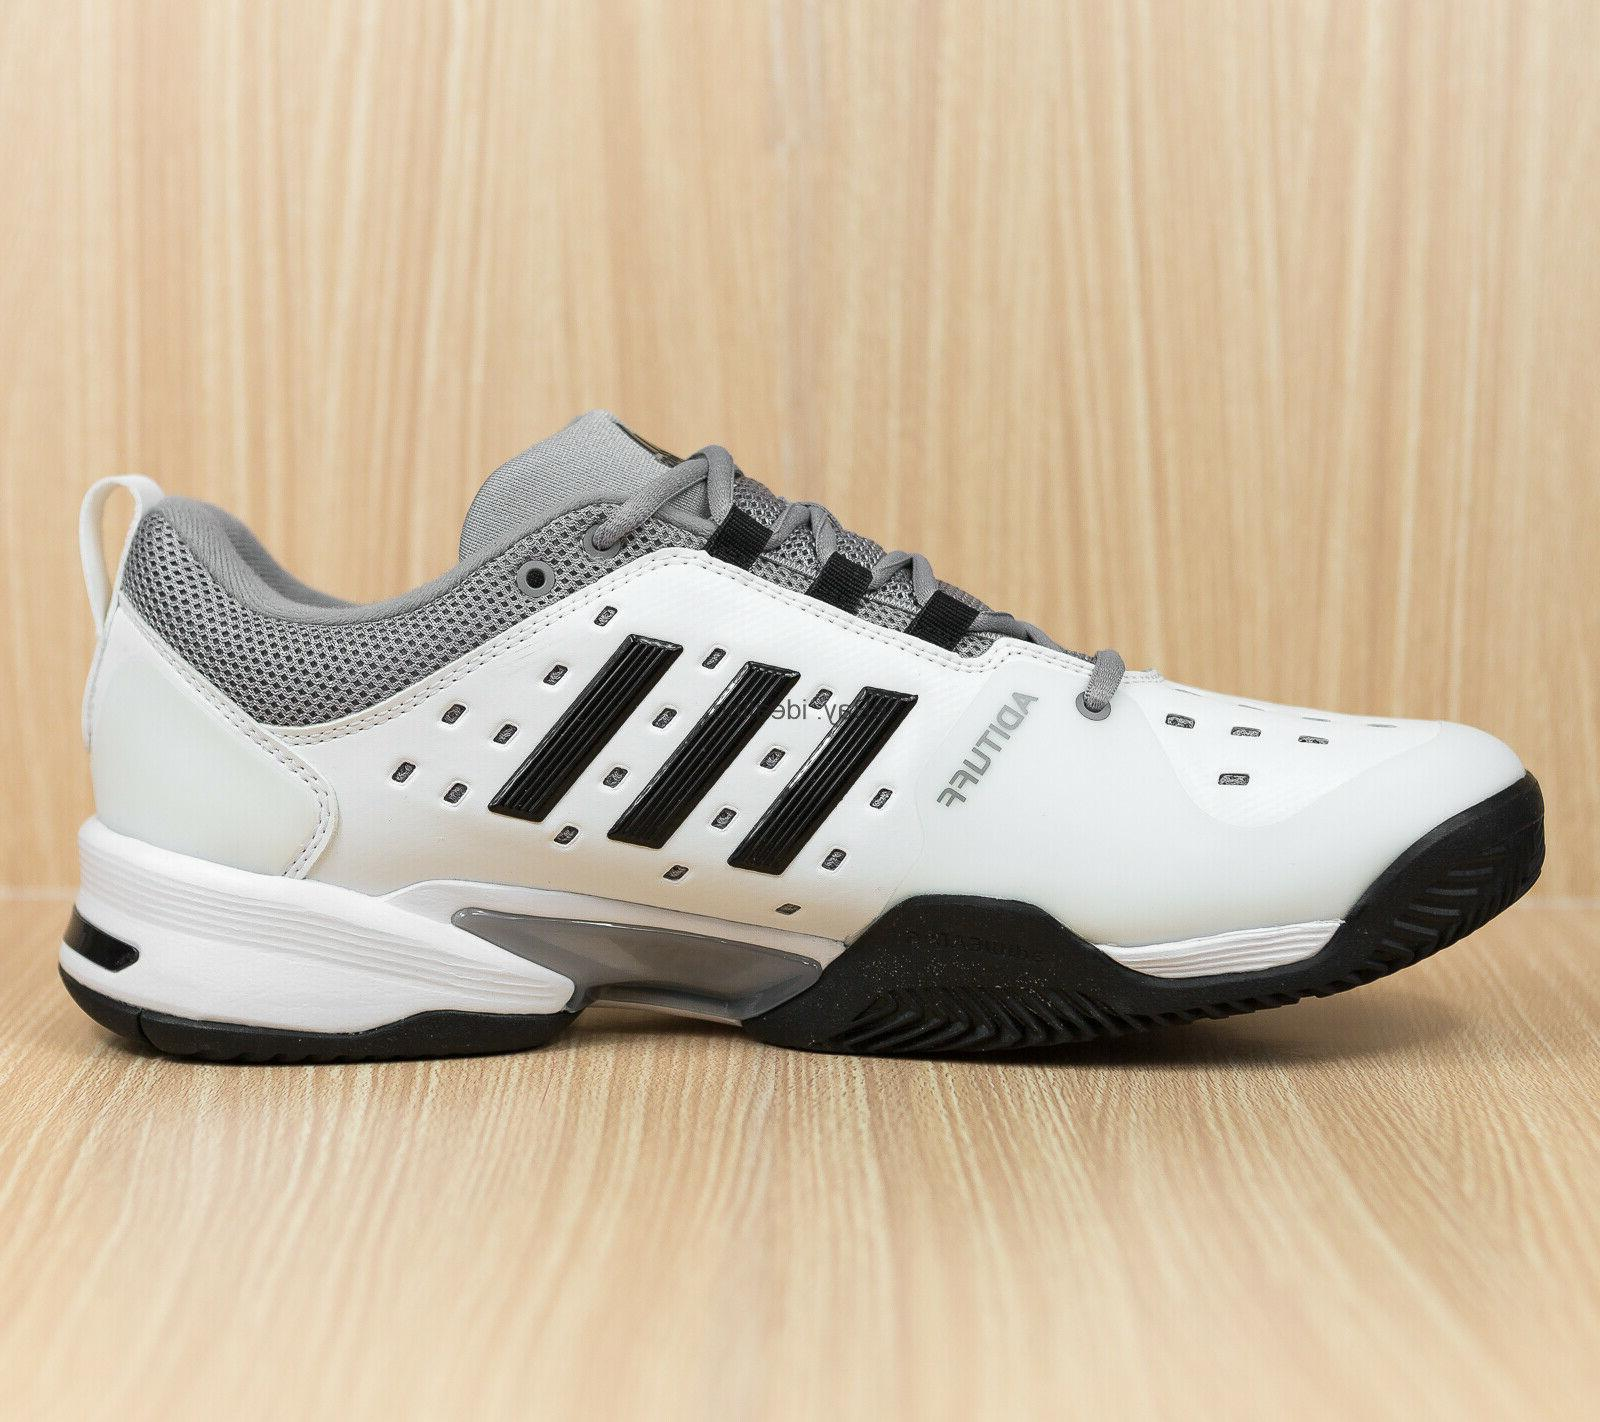 Adidas Classic Tennis Shoes White BY2920 11.5